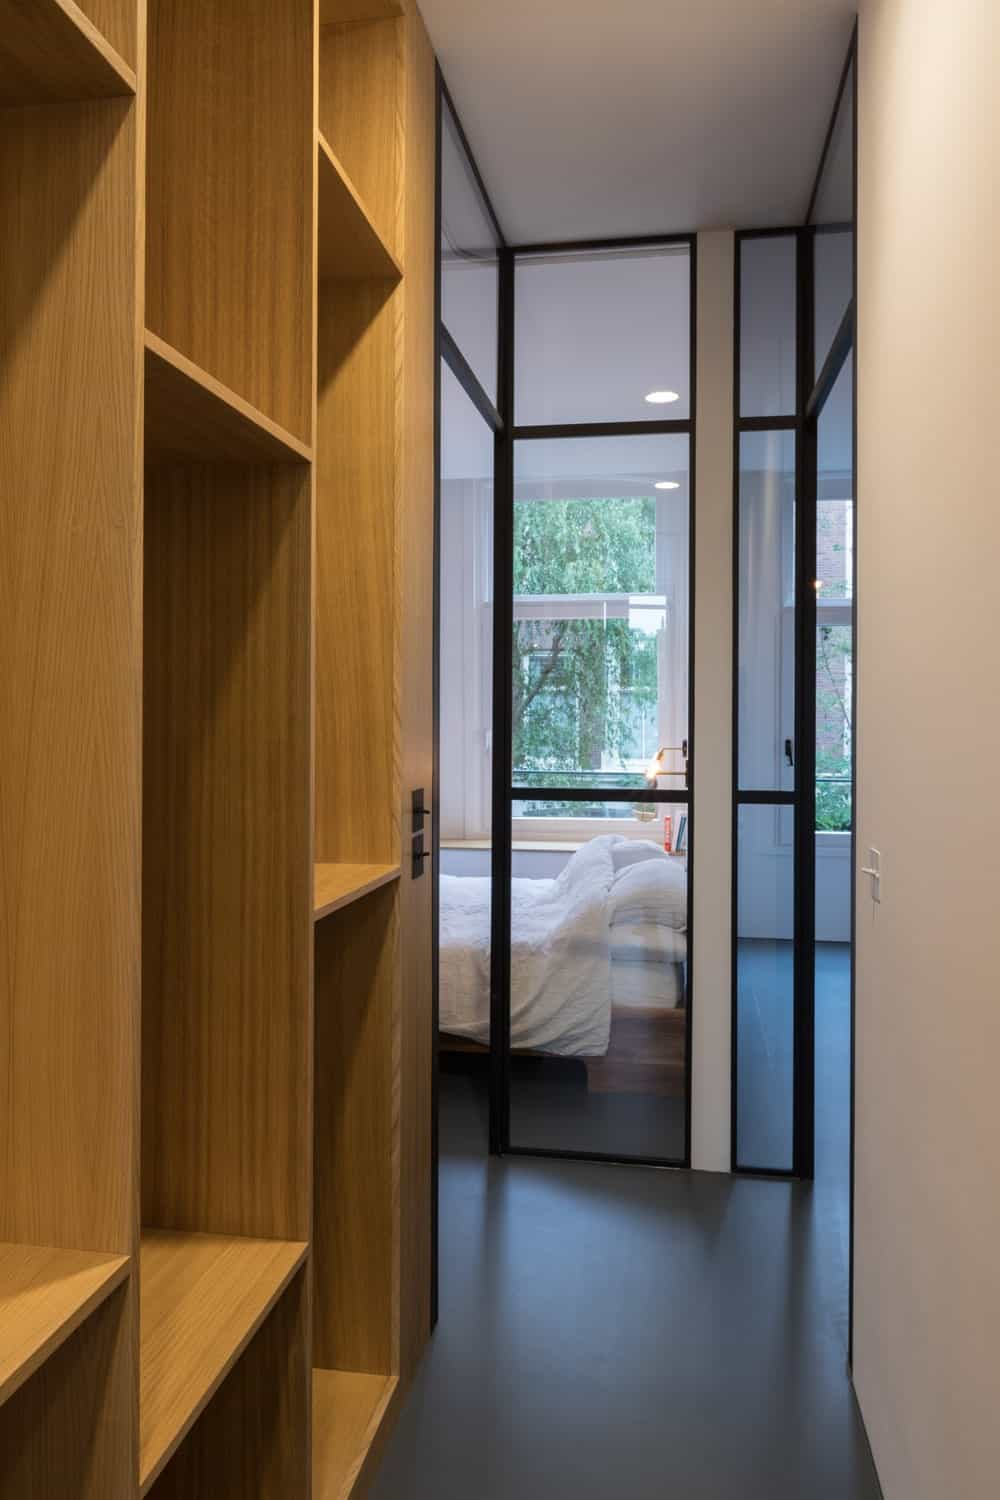 Wooden shelvings inside the primary bedroom in the Frans Halsstraat designed by Cantero Architecture.